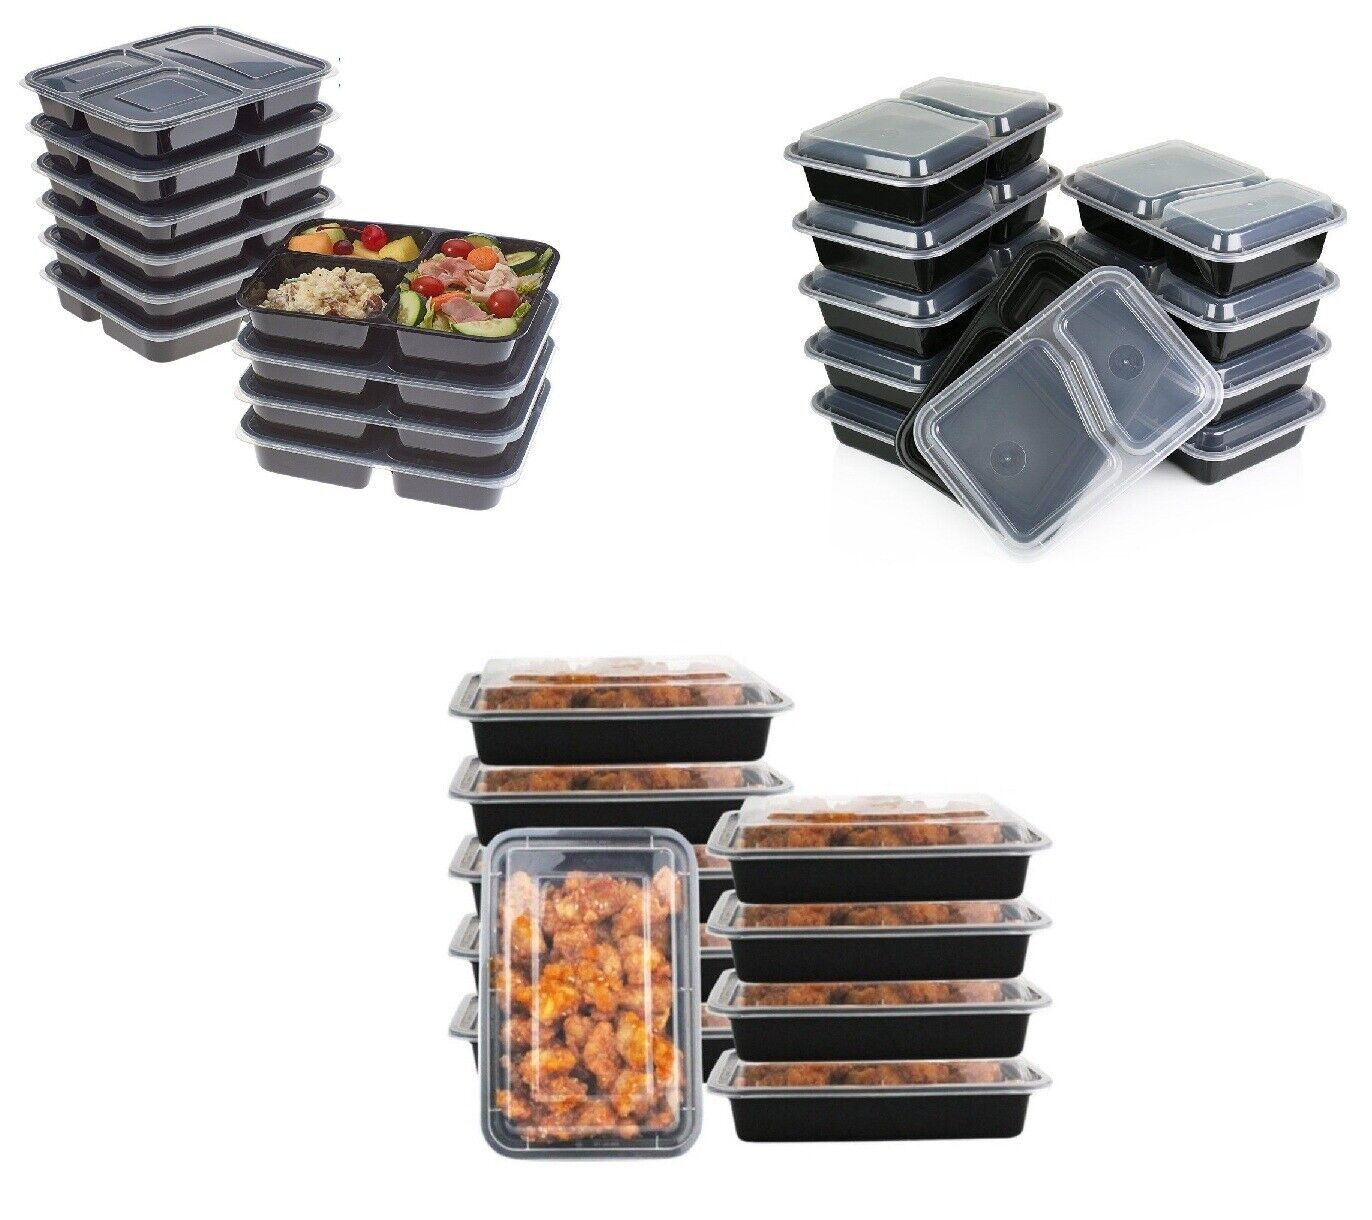 Pack Of 10 1 2 3 Compartments Plastic Lunch Box Food Storage Meal Prep Container Ebay